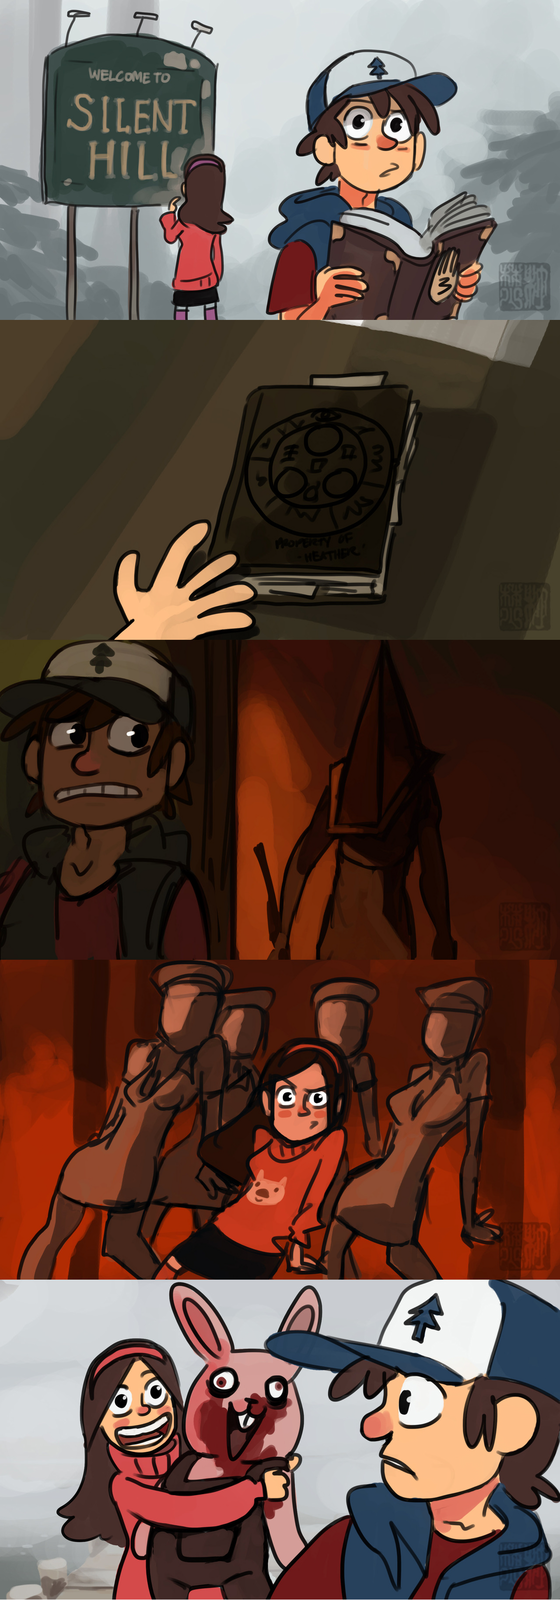 http://yumegawa.tumblr.com/post/30794056076/mabel-and-dipper-goes-to-silent-hill-c-daryl